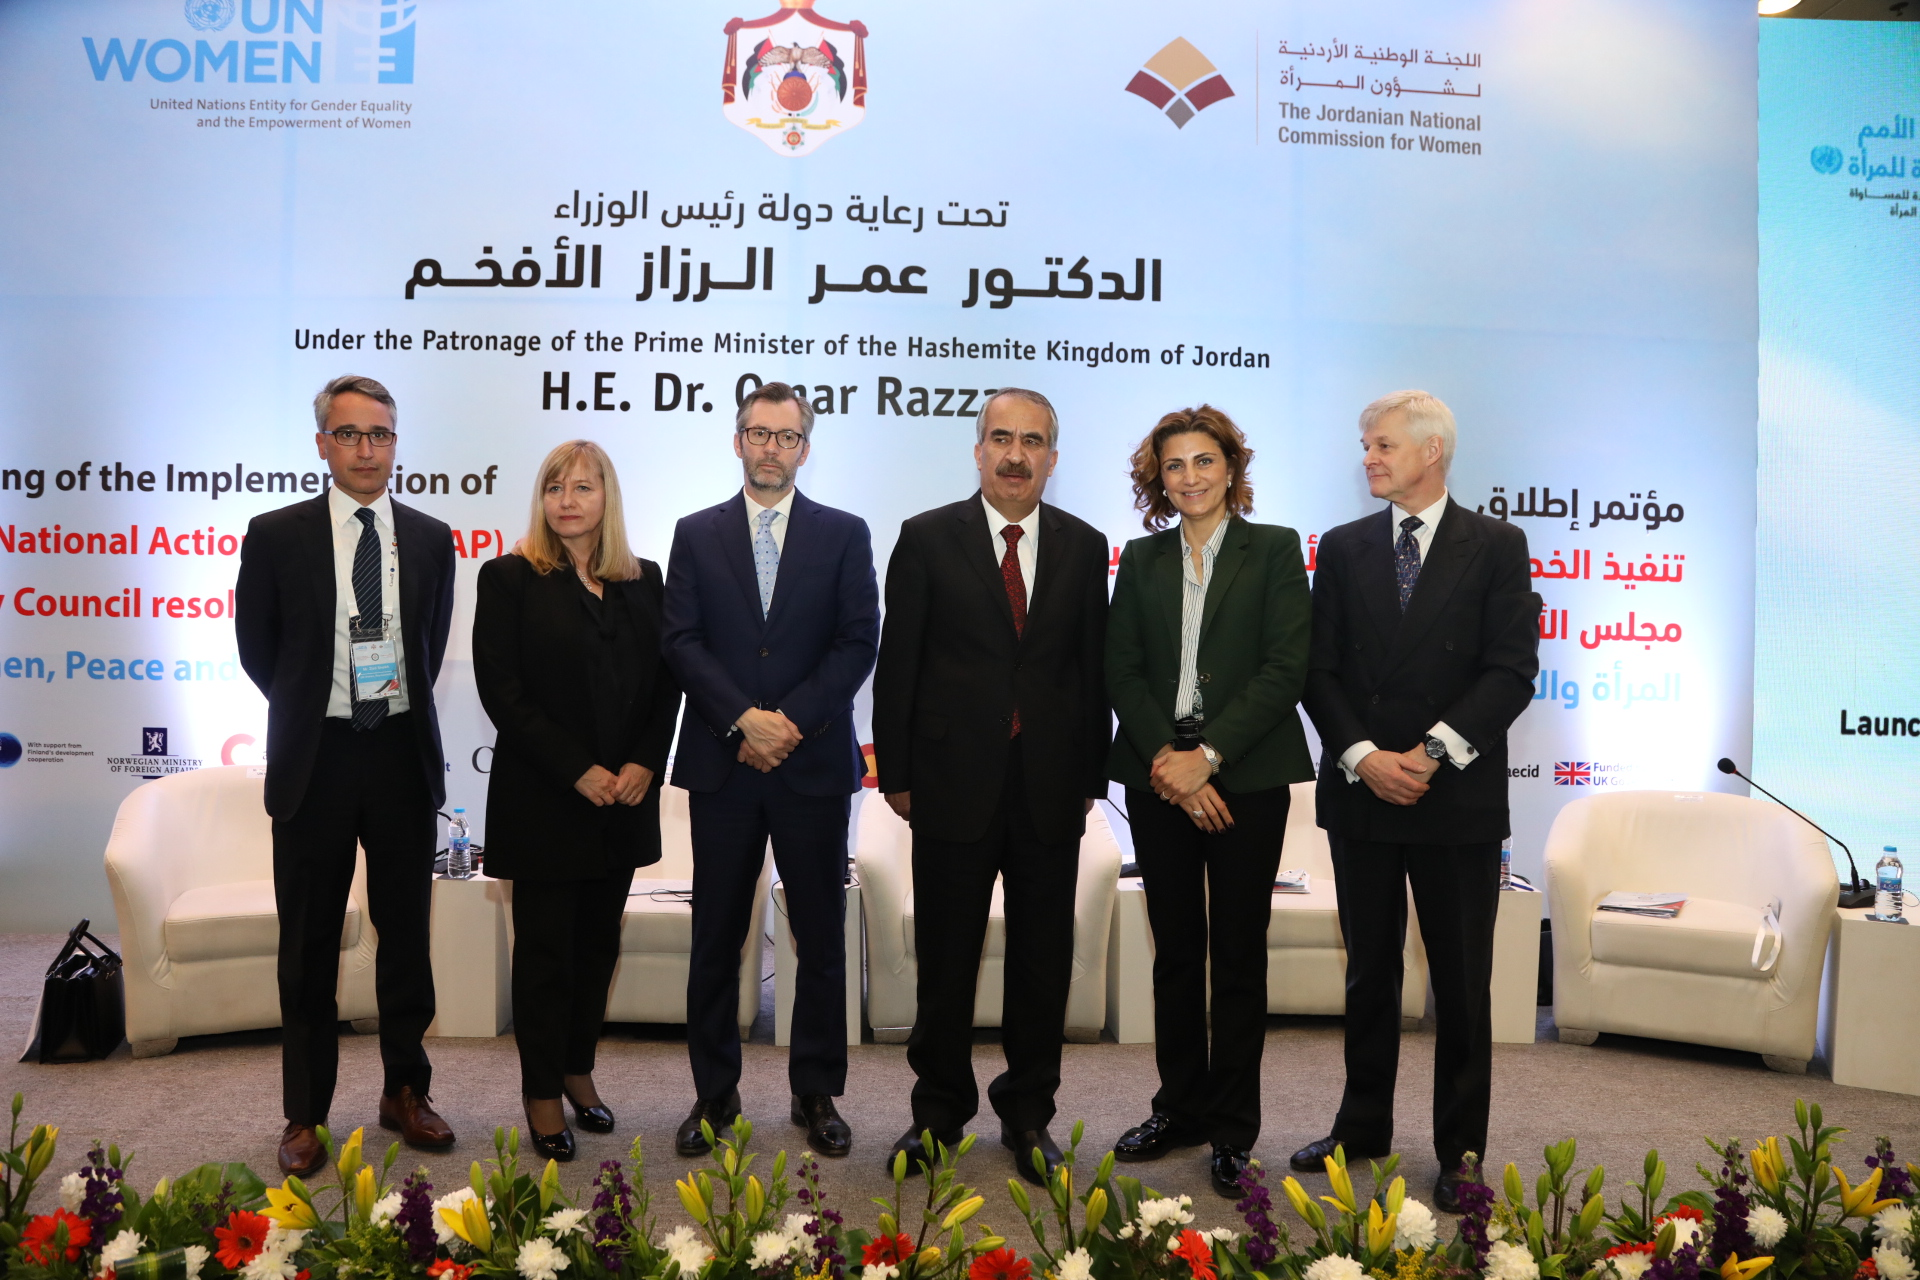 UNDER THE PATRONAGE OF THE PRIME MINISTER: LAUNCH OF THE IMPLEMENTATION OF JORDAN NATIONAL ACTION PLAN ON UNSCR 1325